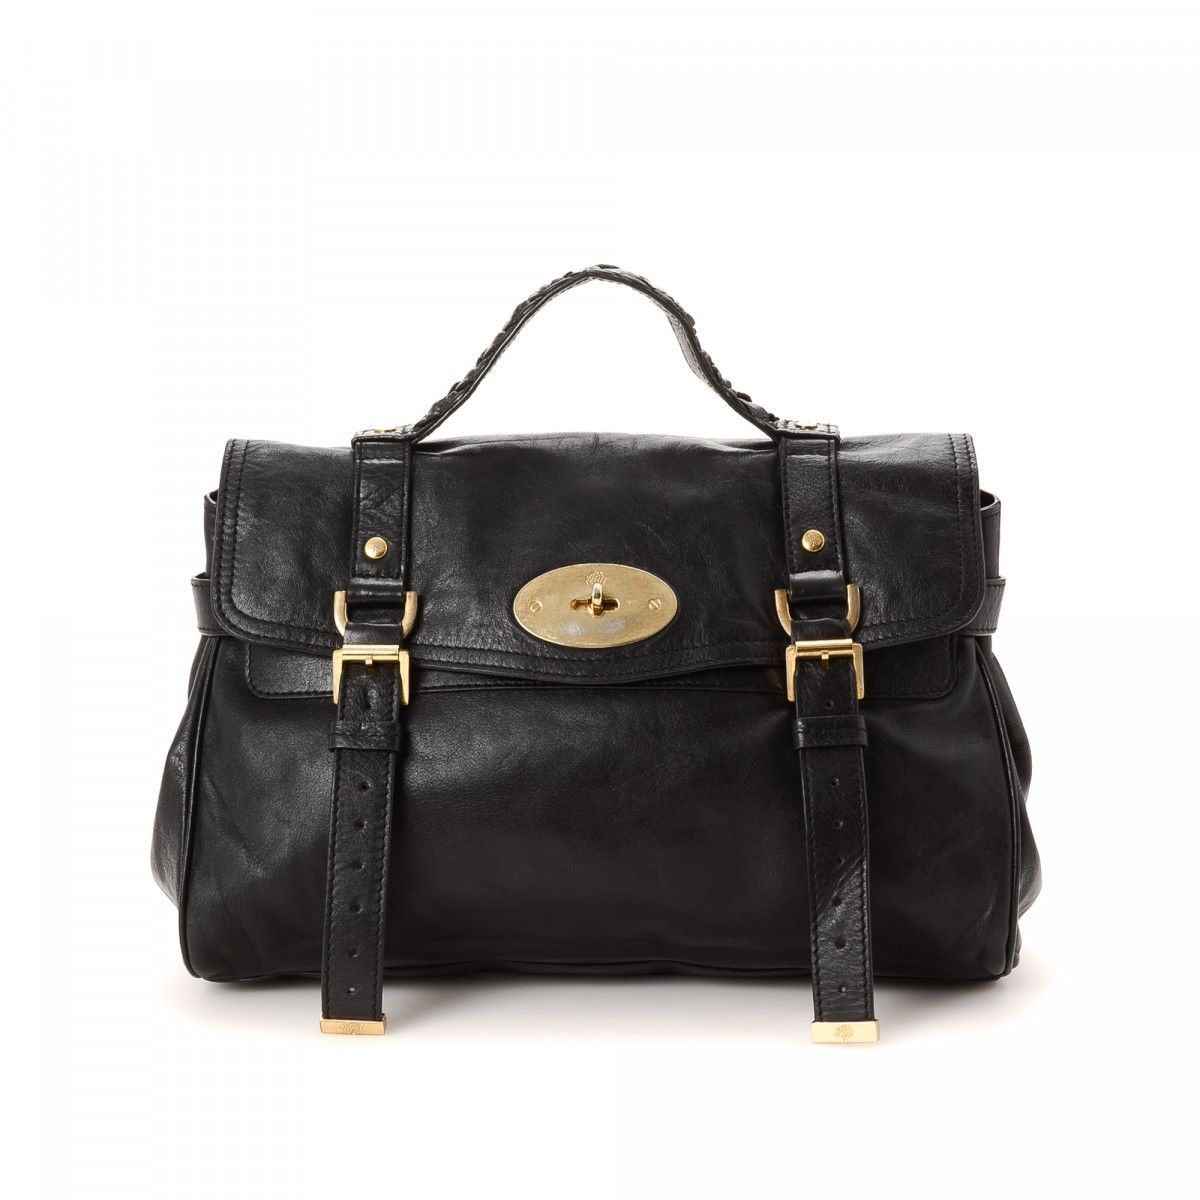 Mulberry Pre-owned - Black Leather Handbag t0QczK9k